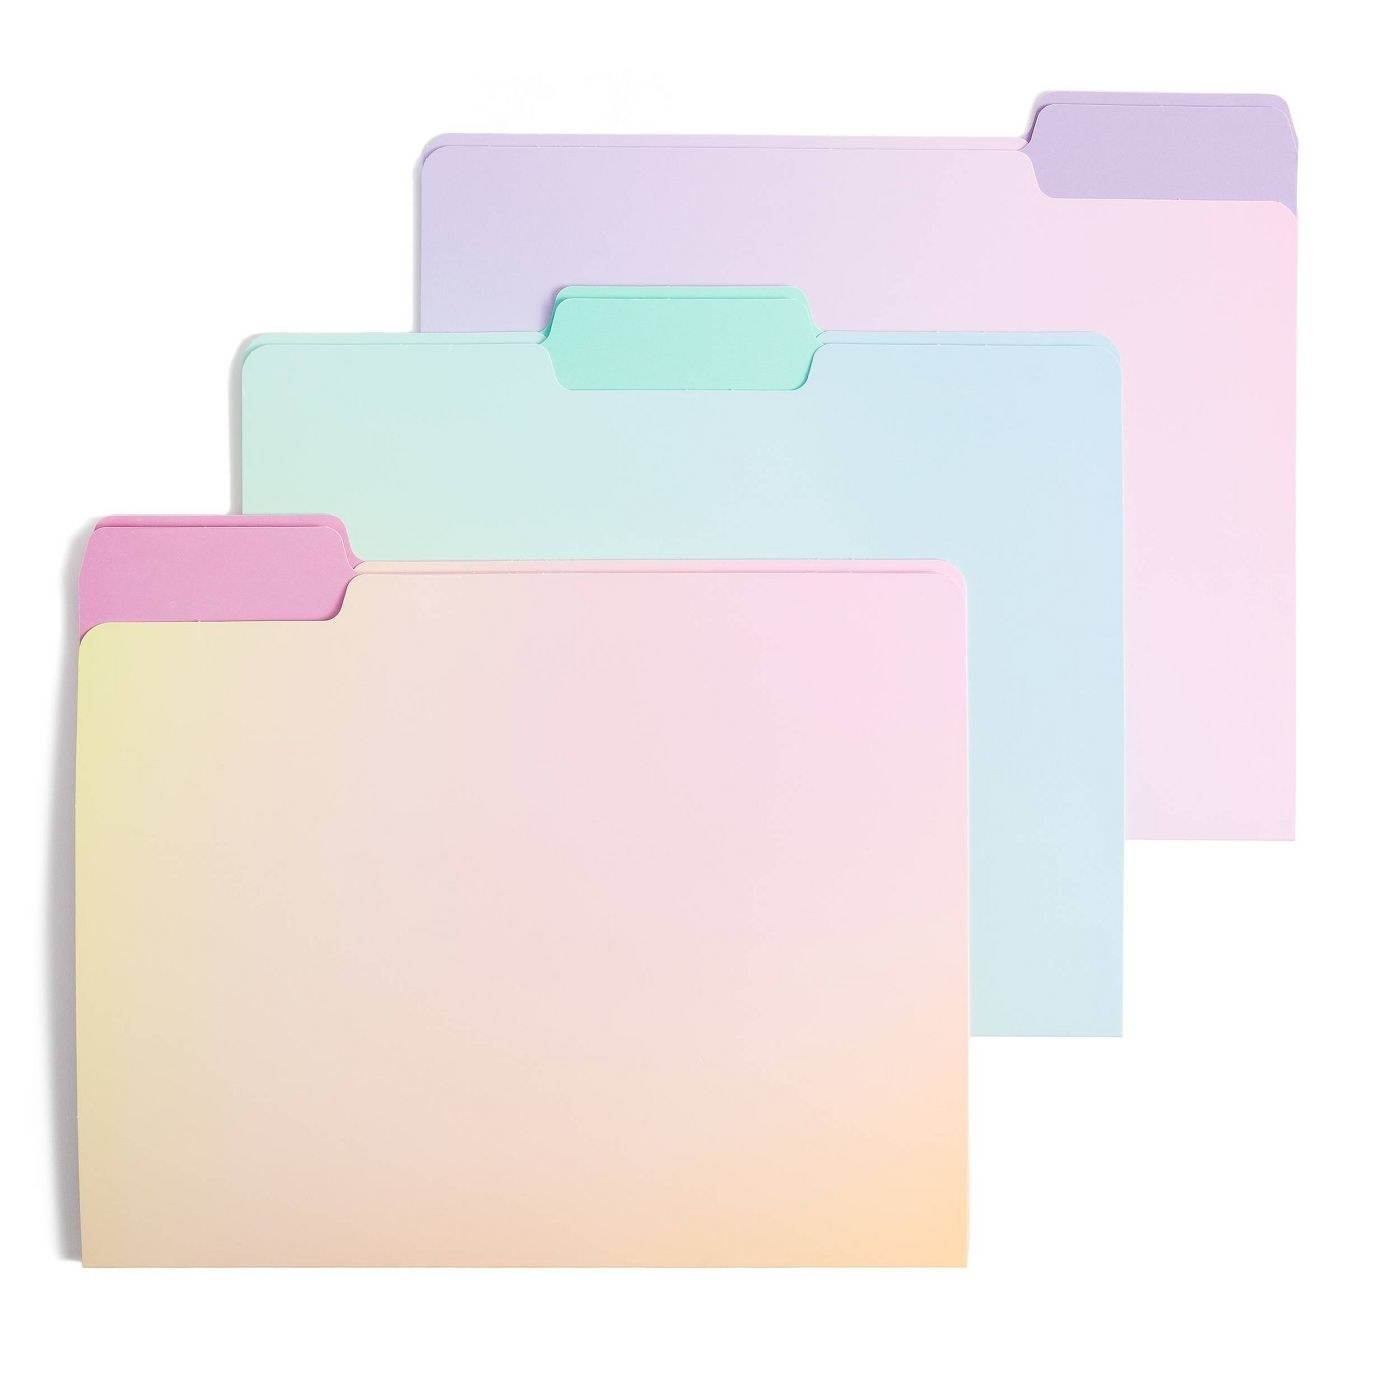 Three of the pastel ombre folders, which are standard letter size and have tabs at the top